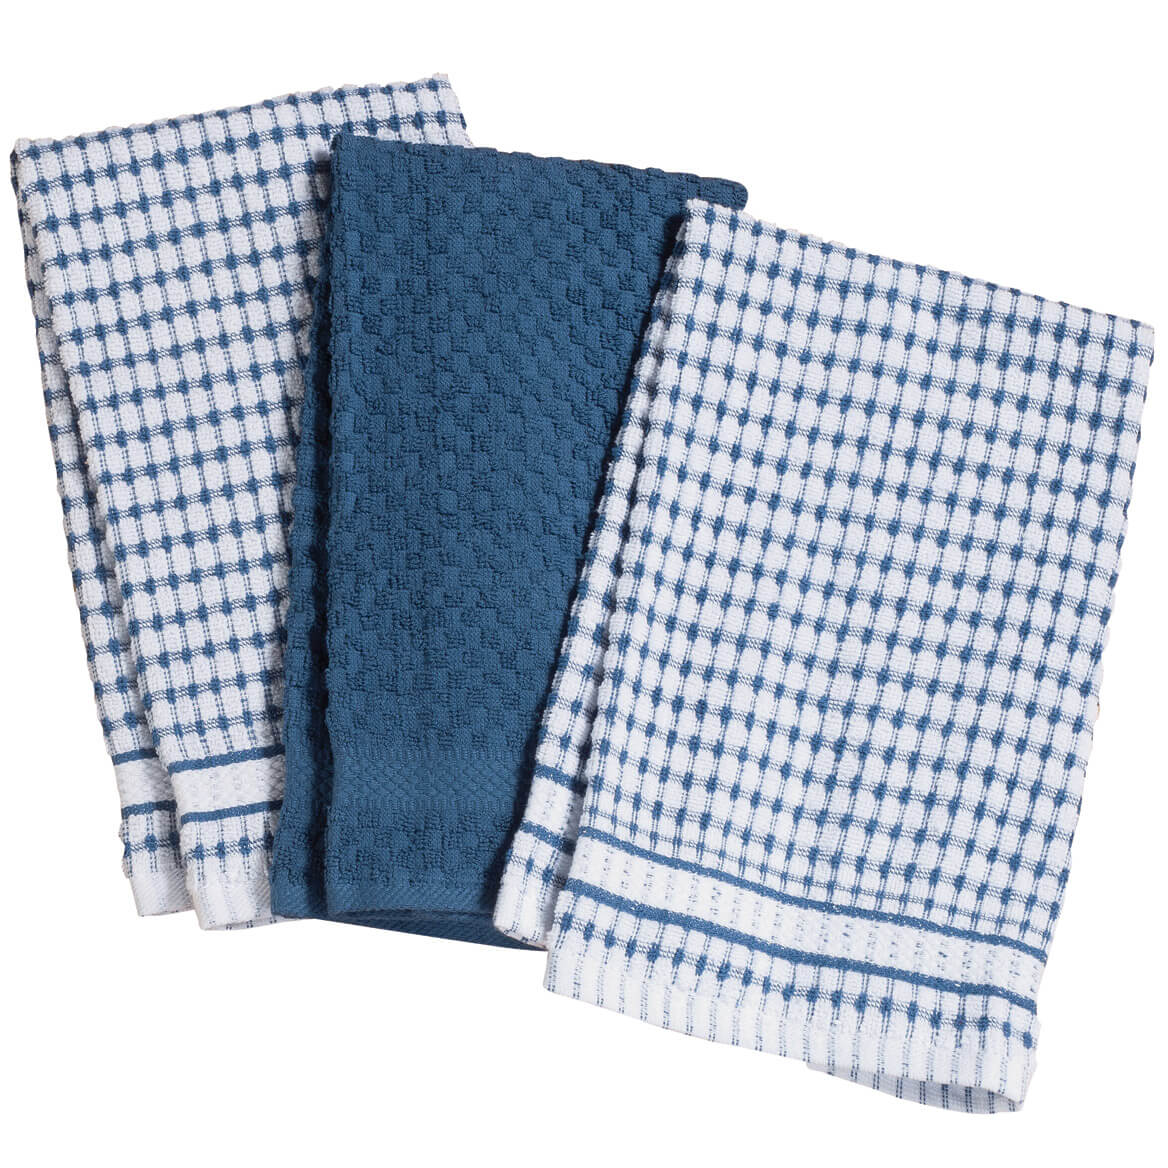 Terry Kitchen Towels, Set of 3 - Cotton Towels - Walter Drake